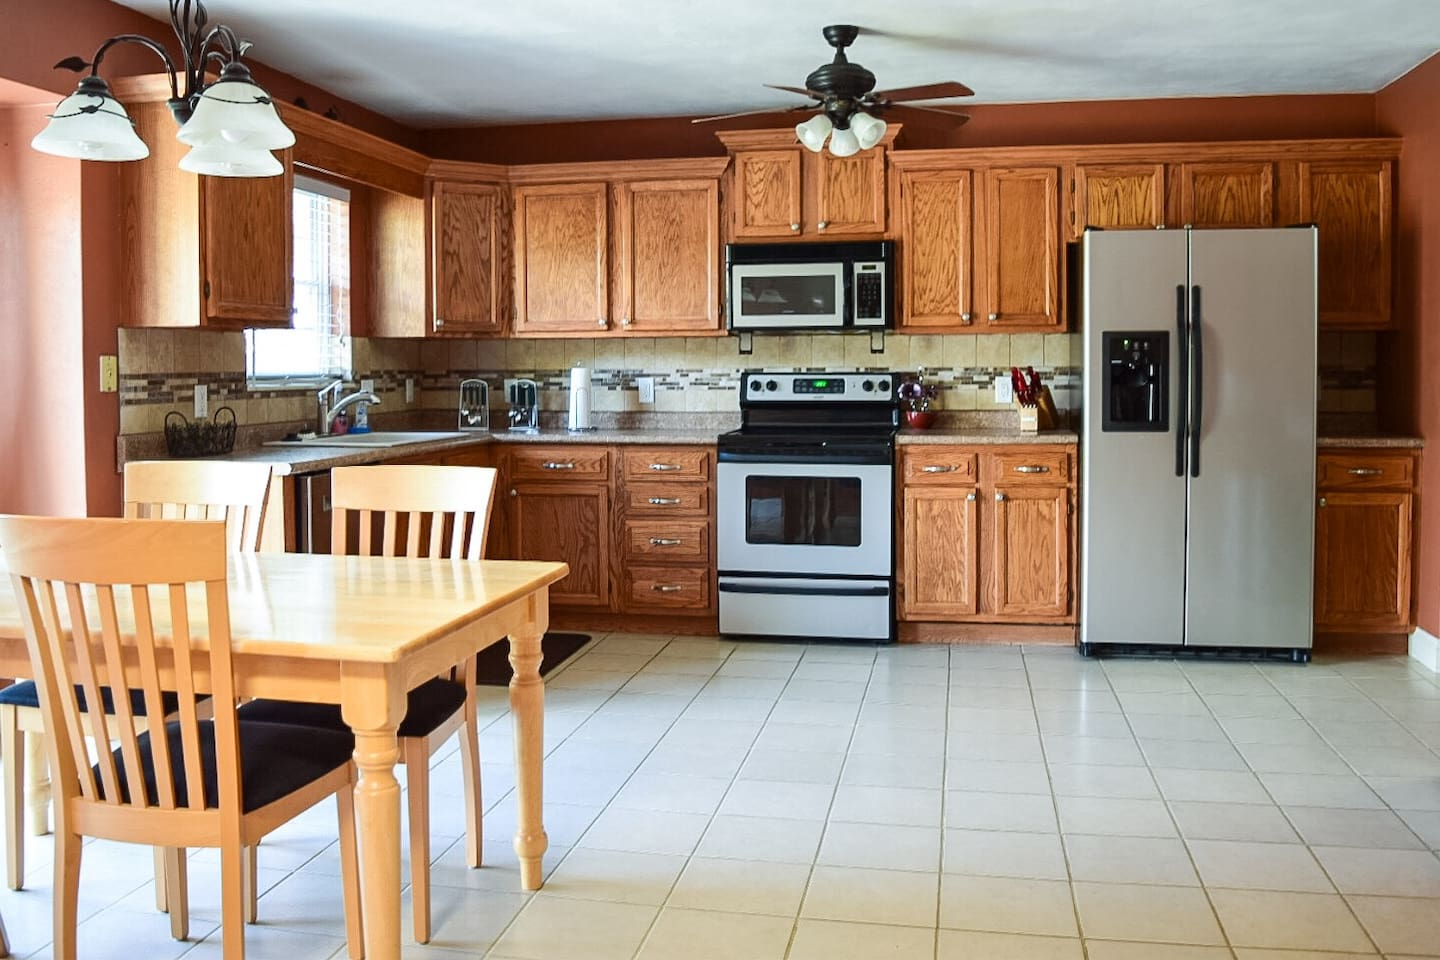 Open kitchen to the living room. Save money by whipping up breakfast, lunch, and dinner here!